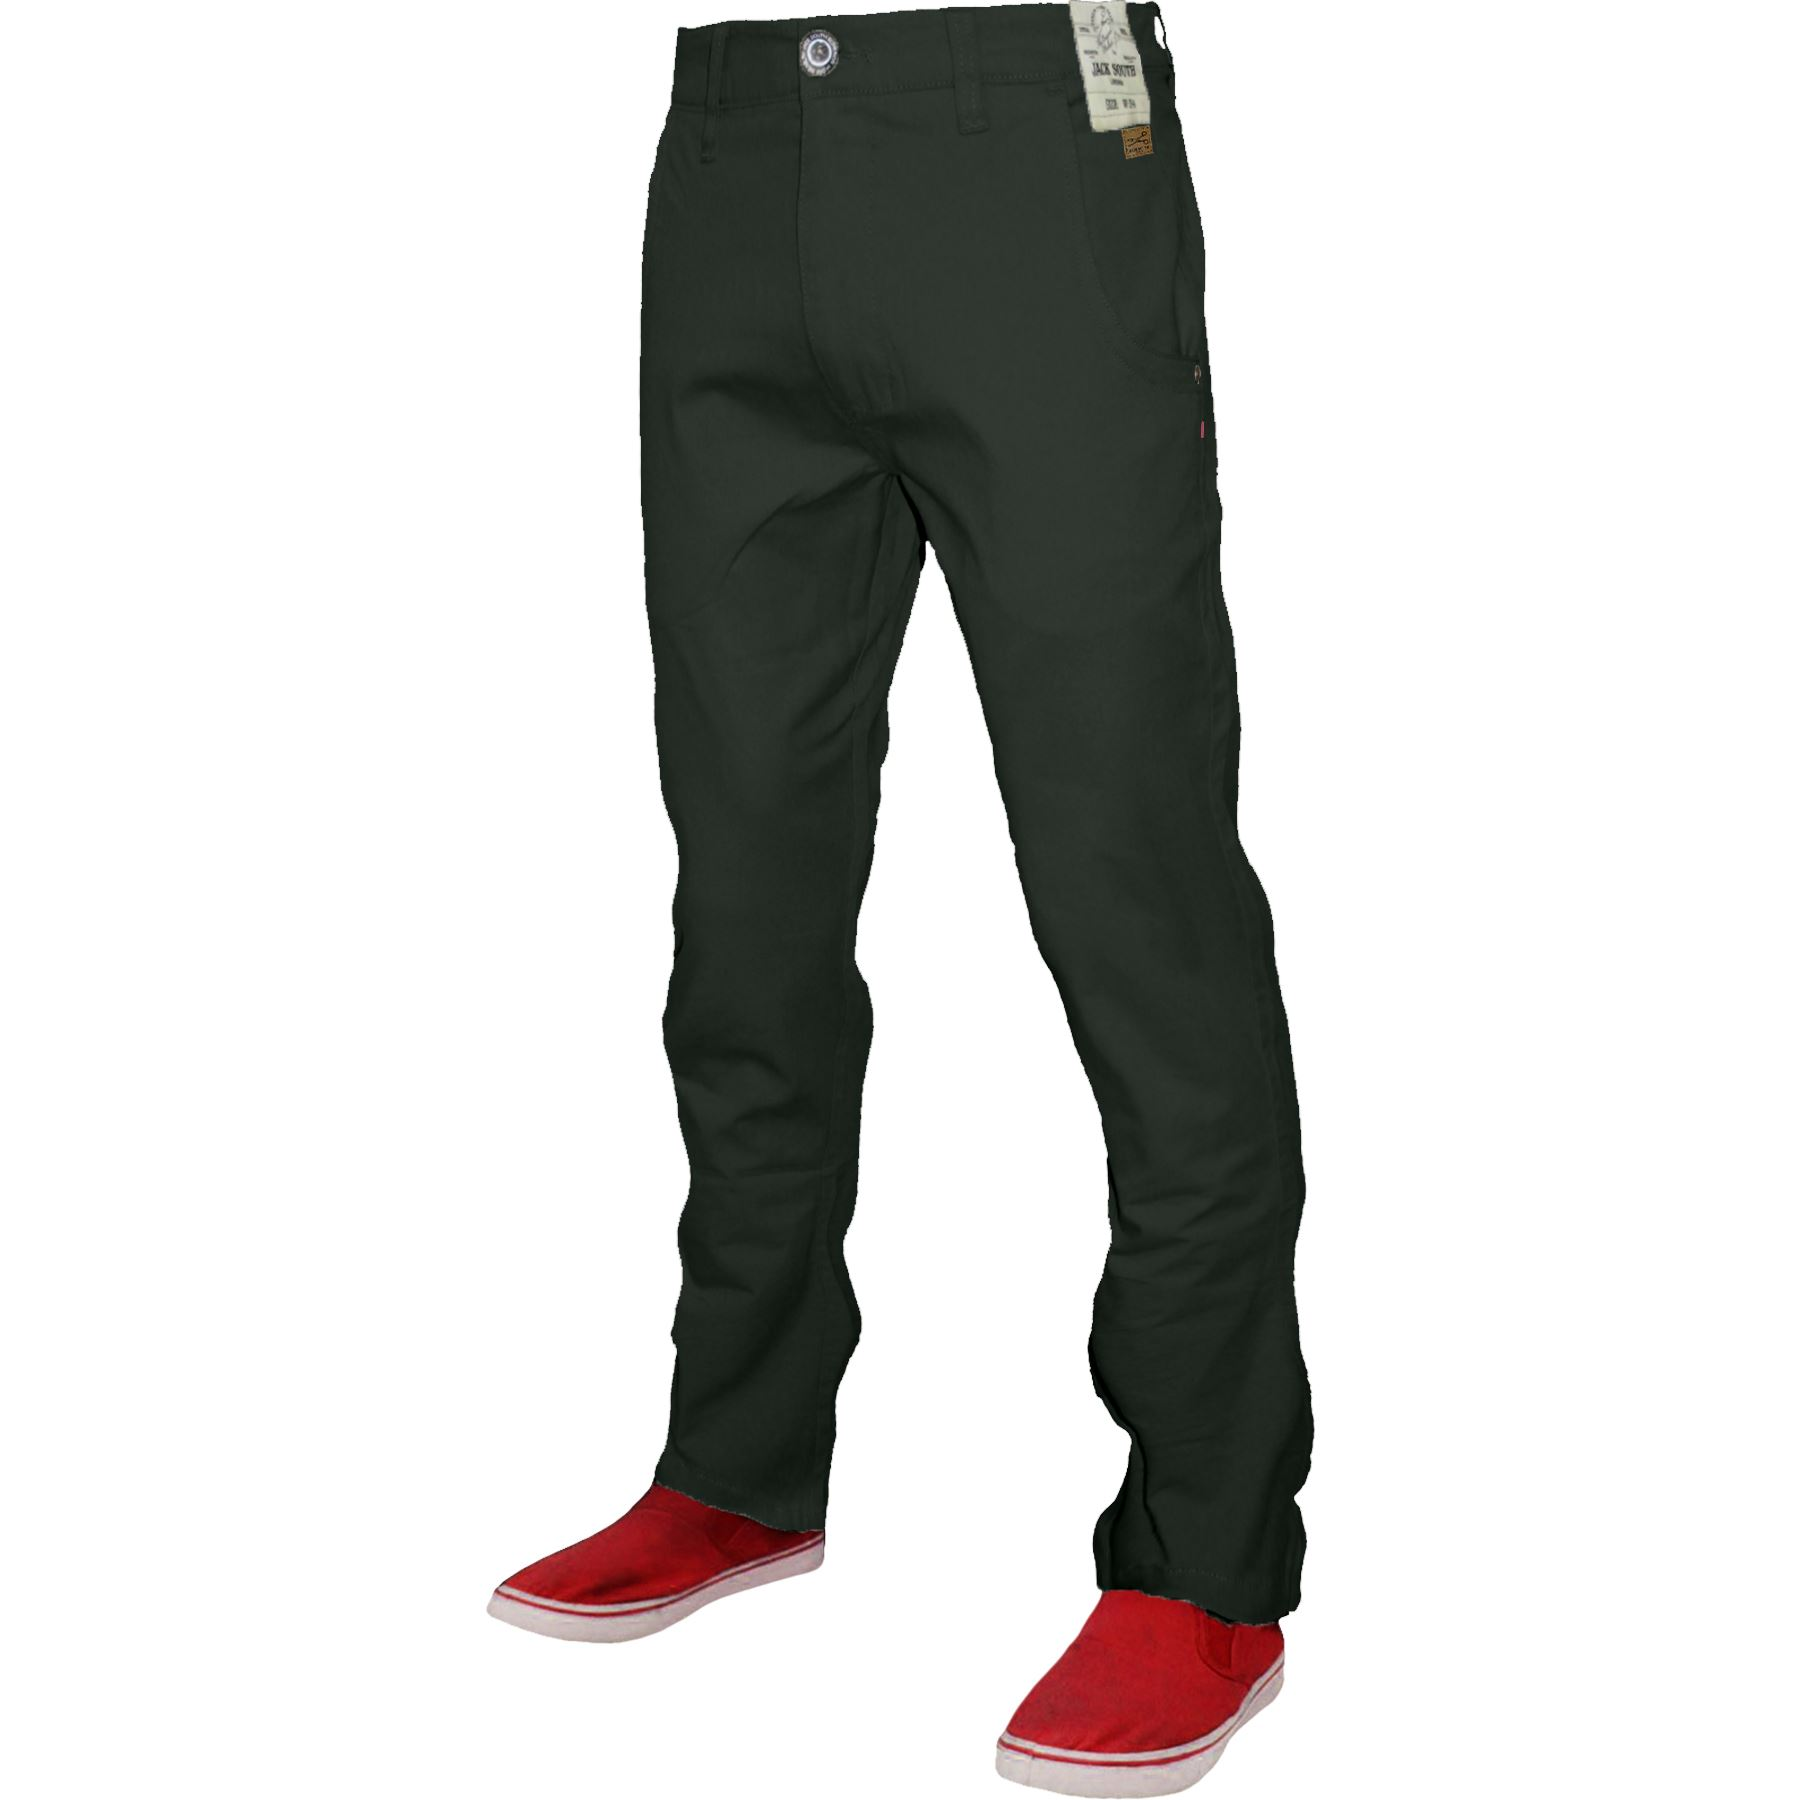 Mens Chino Classic Regular Fit Trouser Casual Stretch Spandex Pants Size 32-40